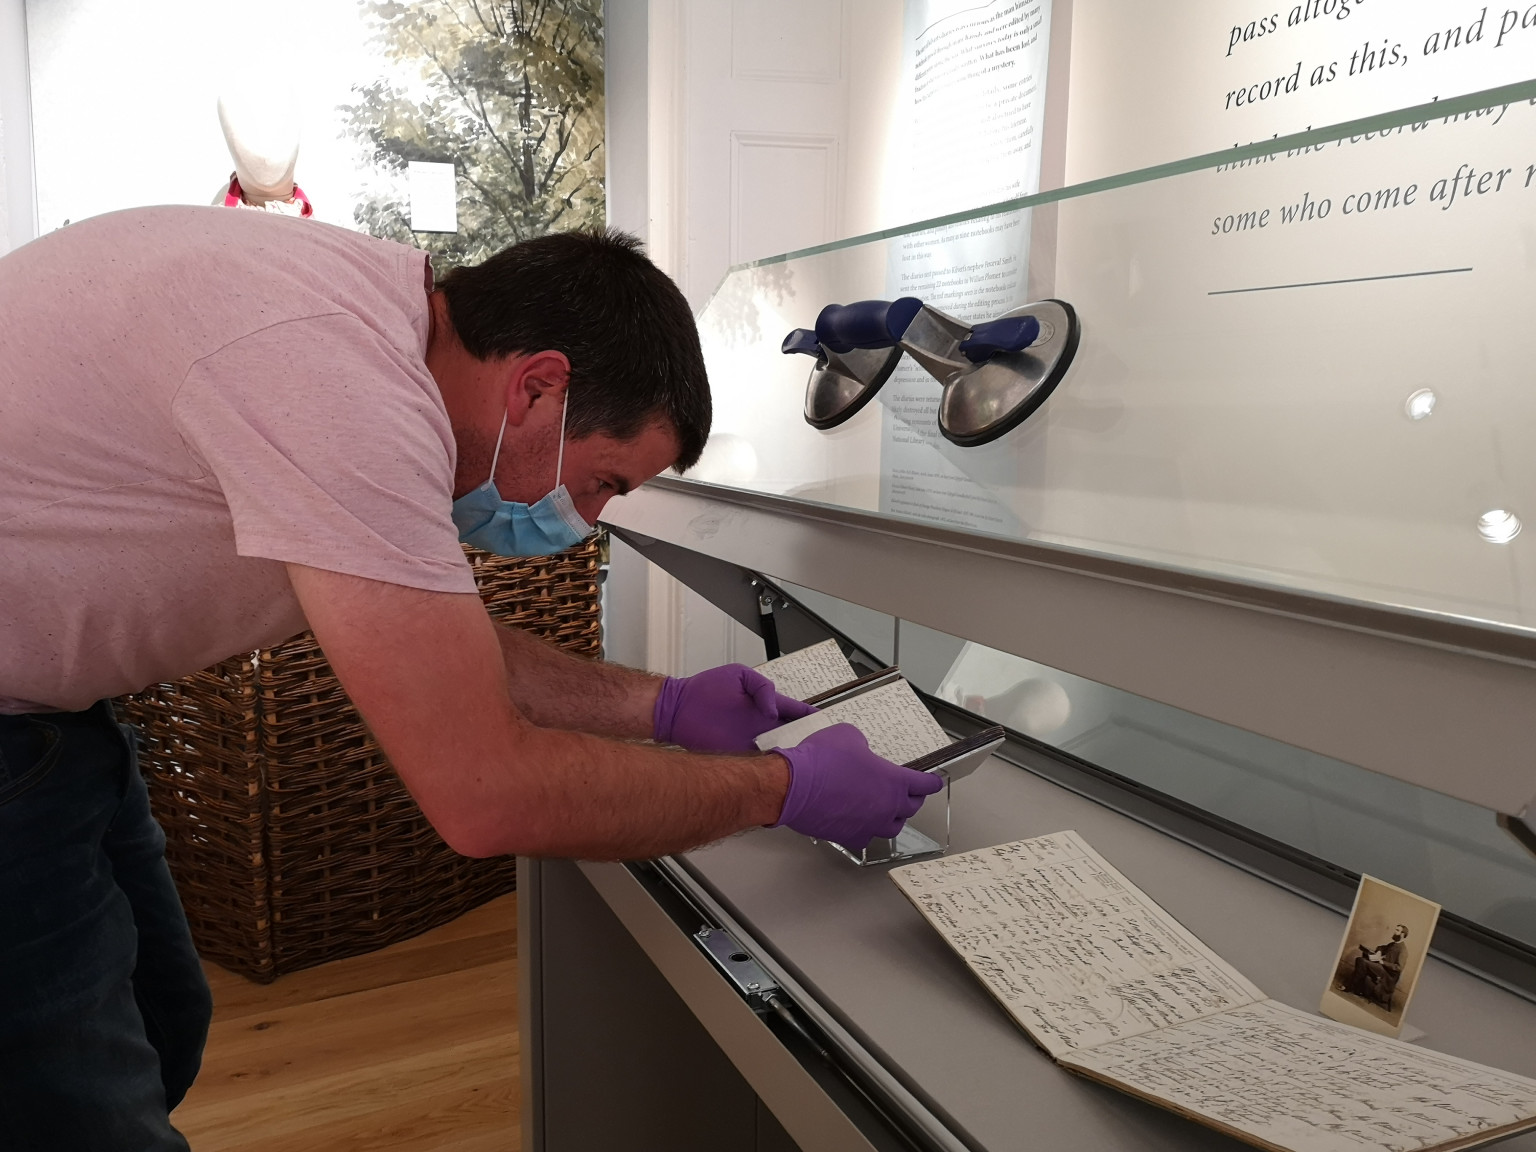 Two of the three surviving Kilvert diaries being installed at Chippenham Museum by Richard Edwards of The National Library of Wales.